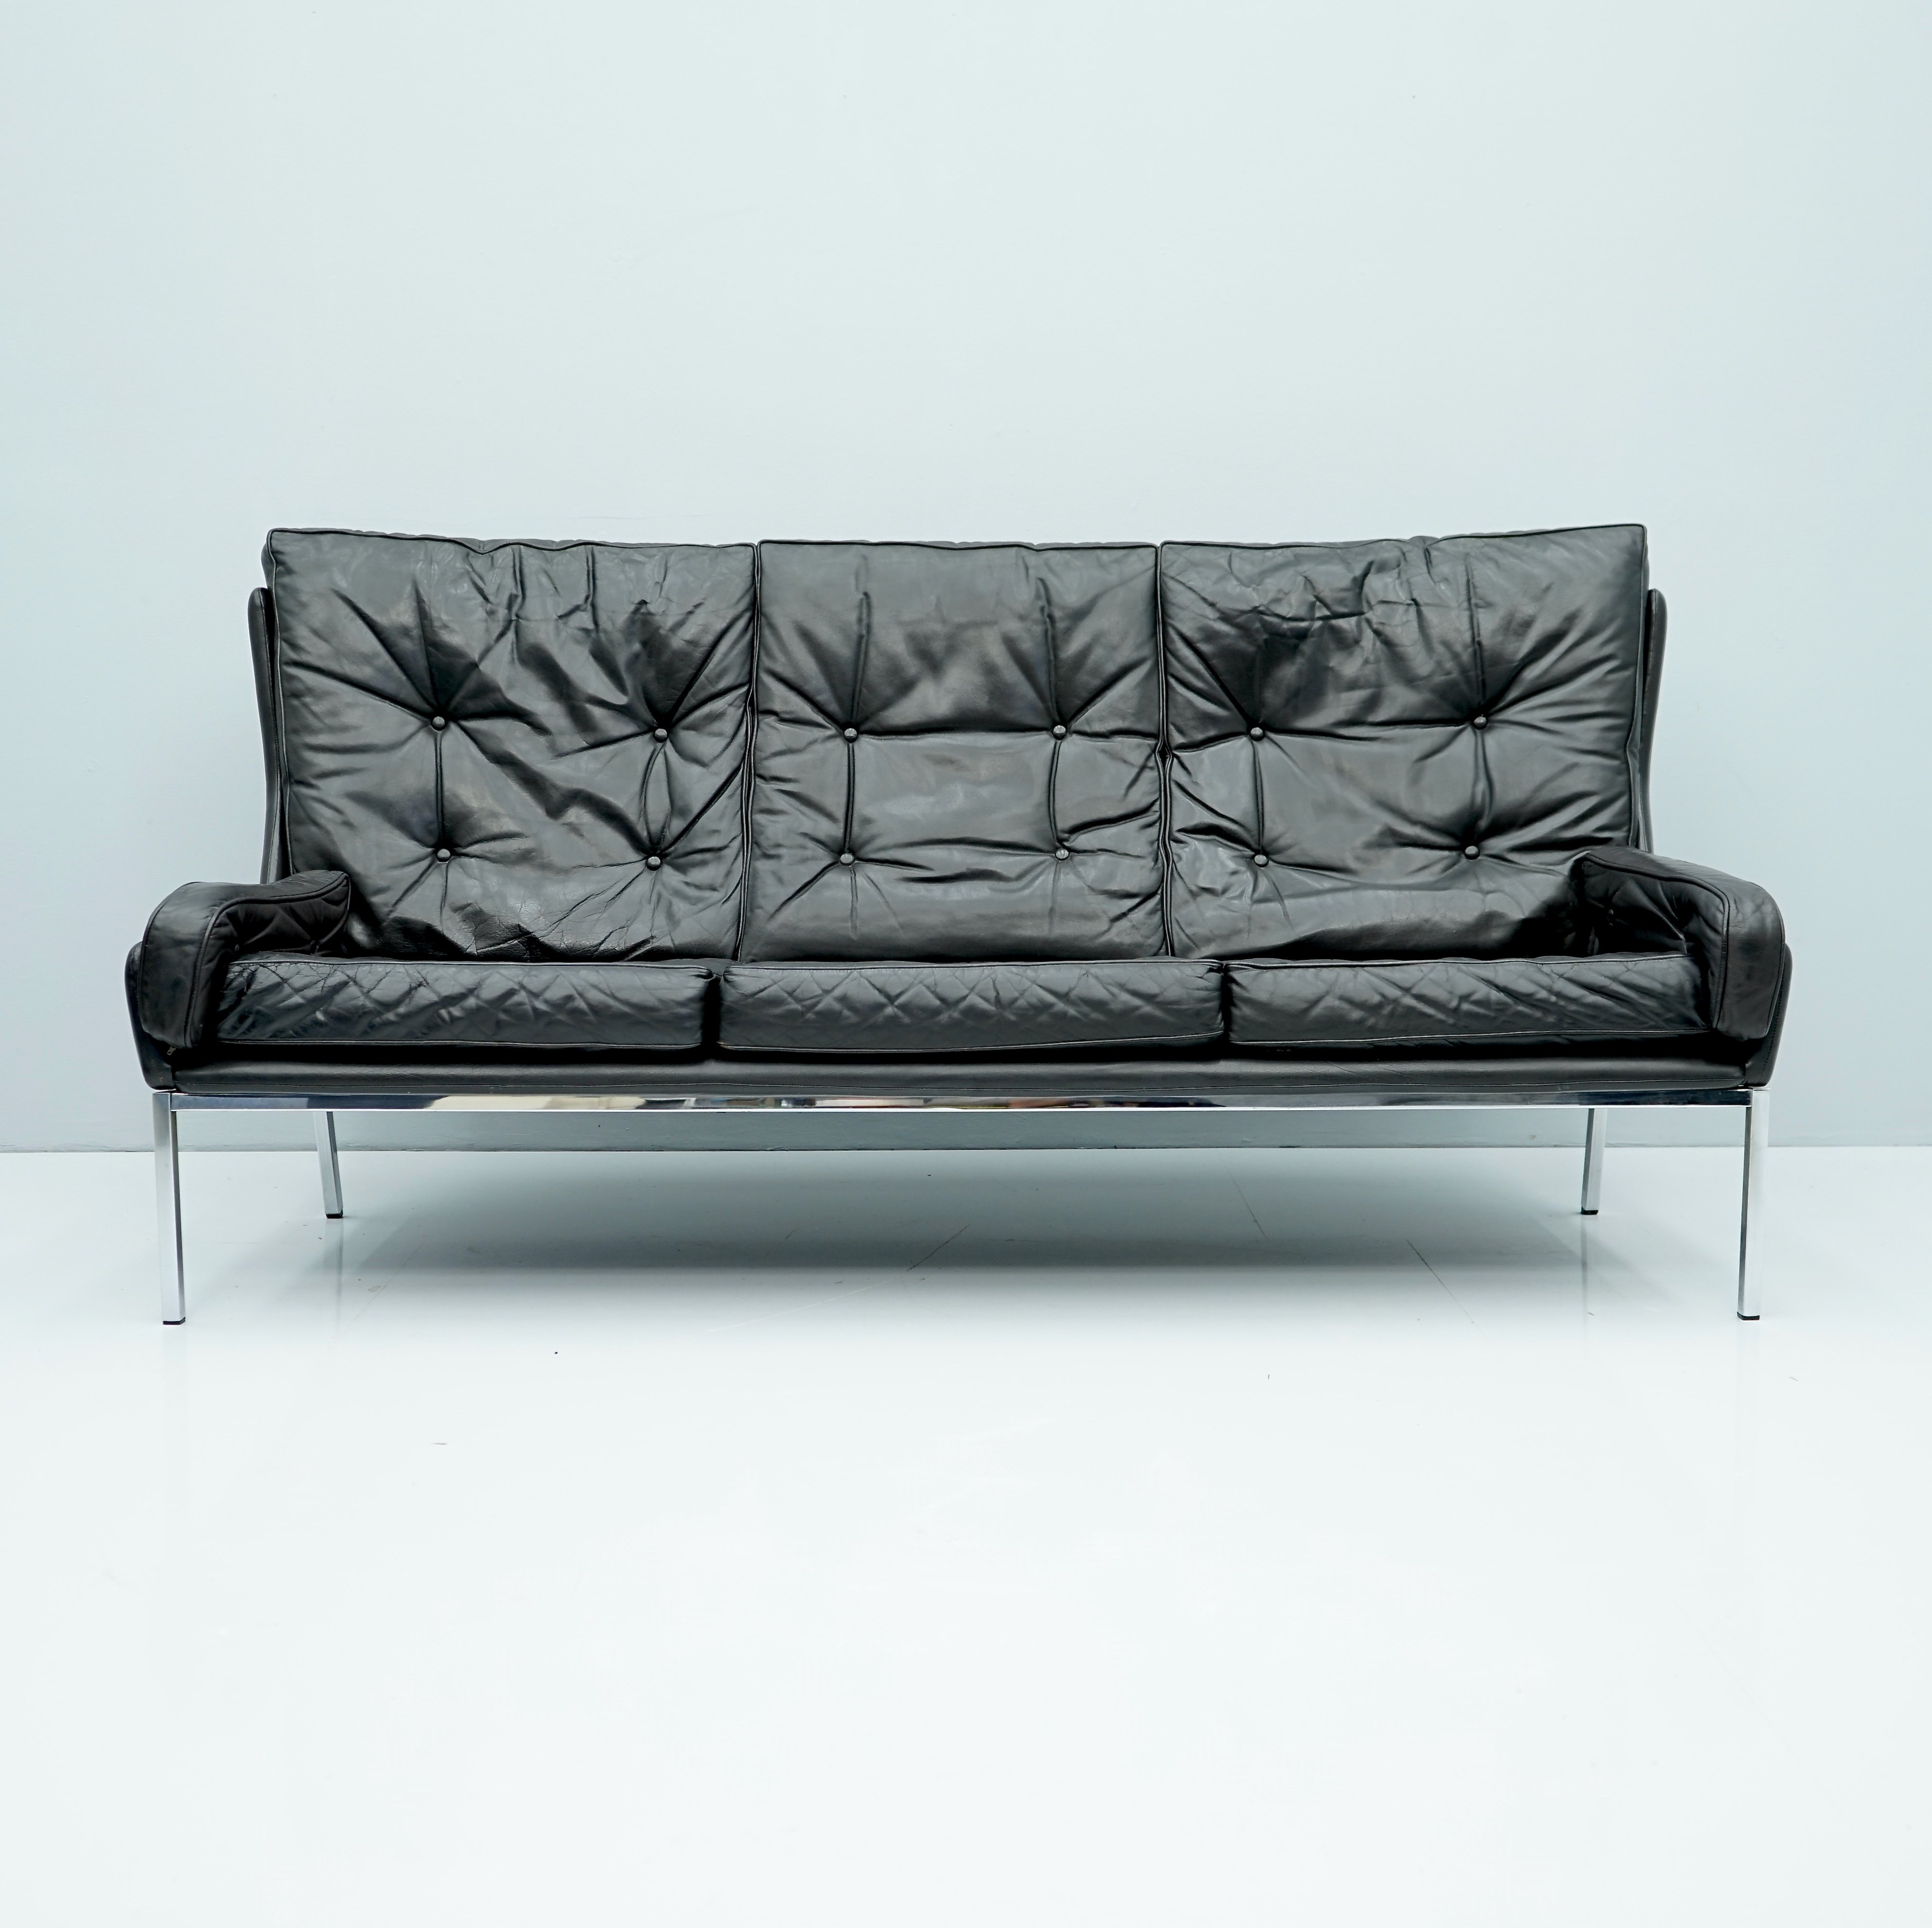 Picture of: Rare Black Leather Sofa By Roland Rainer 1960s 134969